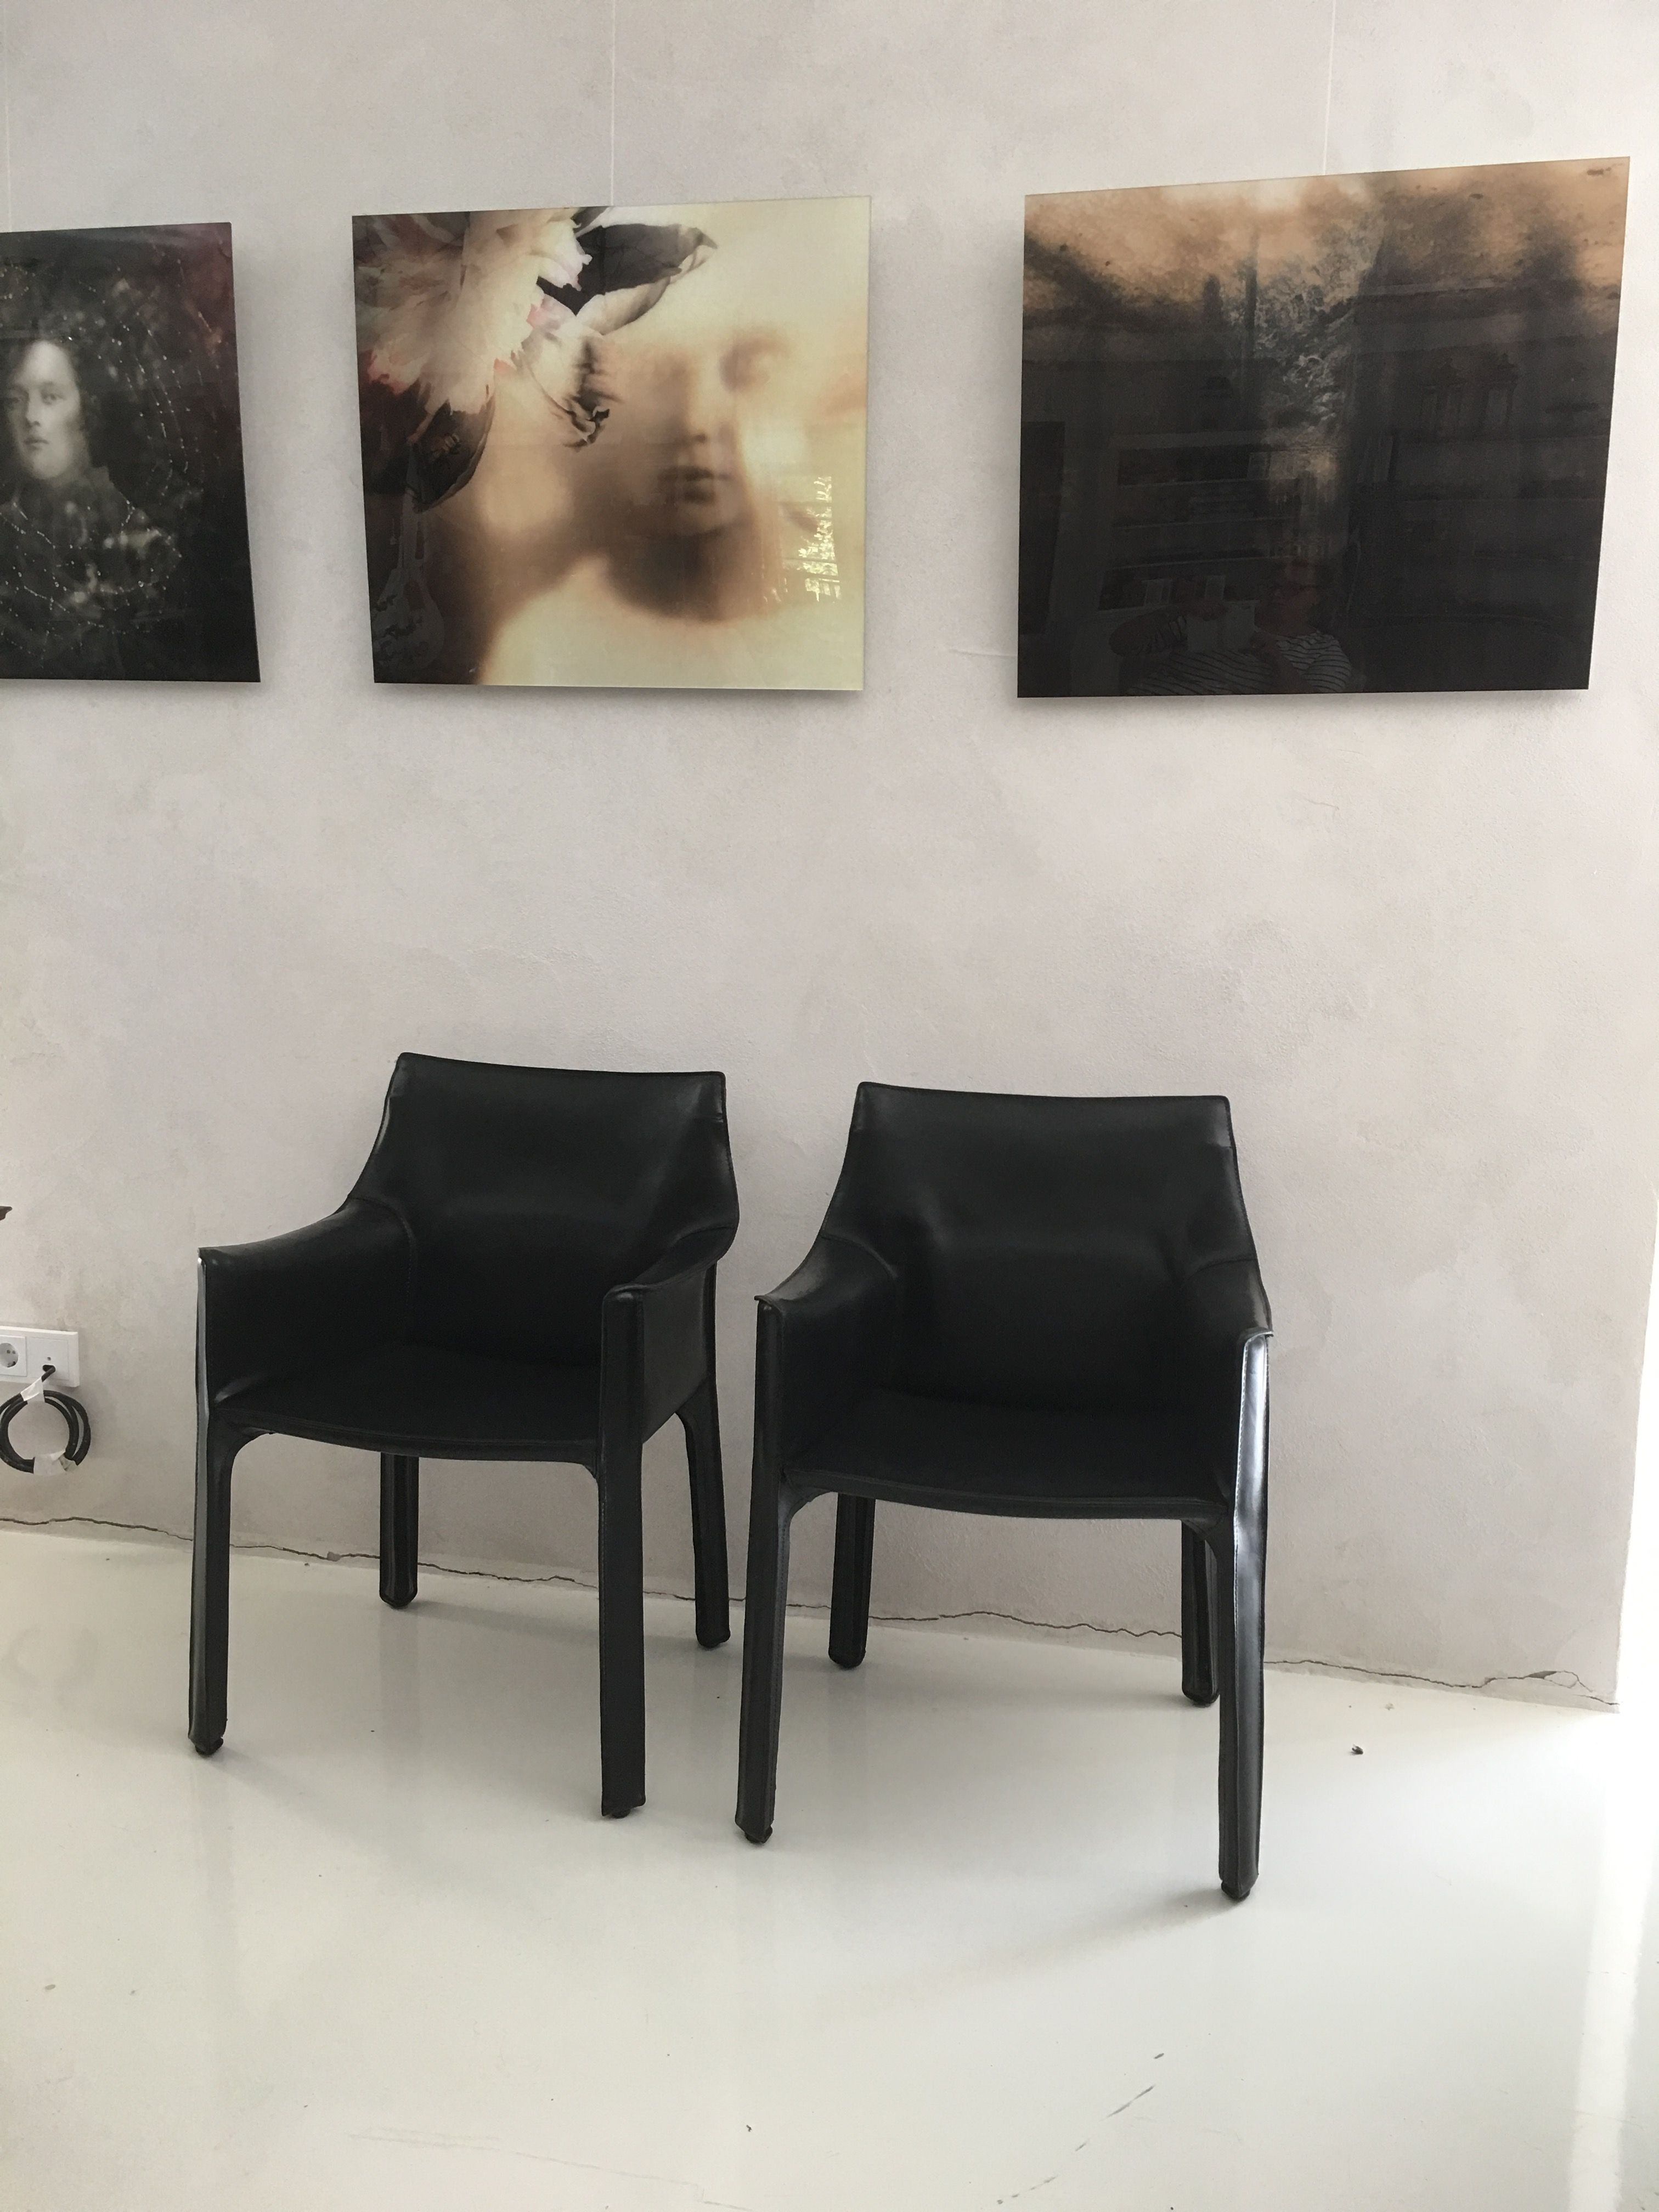 Mario Bellili's Cab chairs by Cassina reupholstered in Artemik